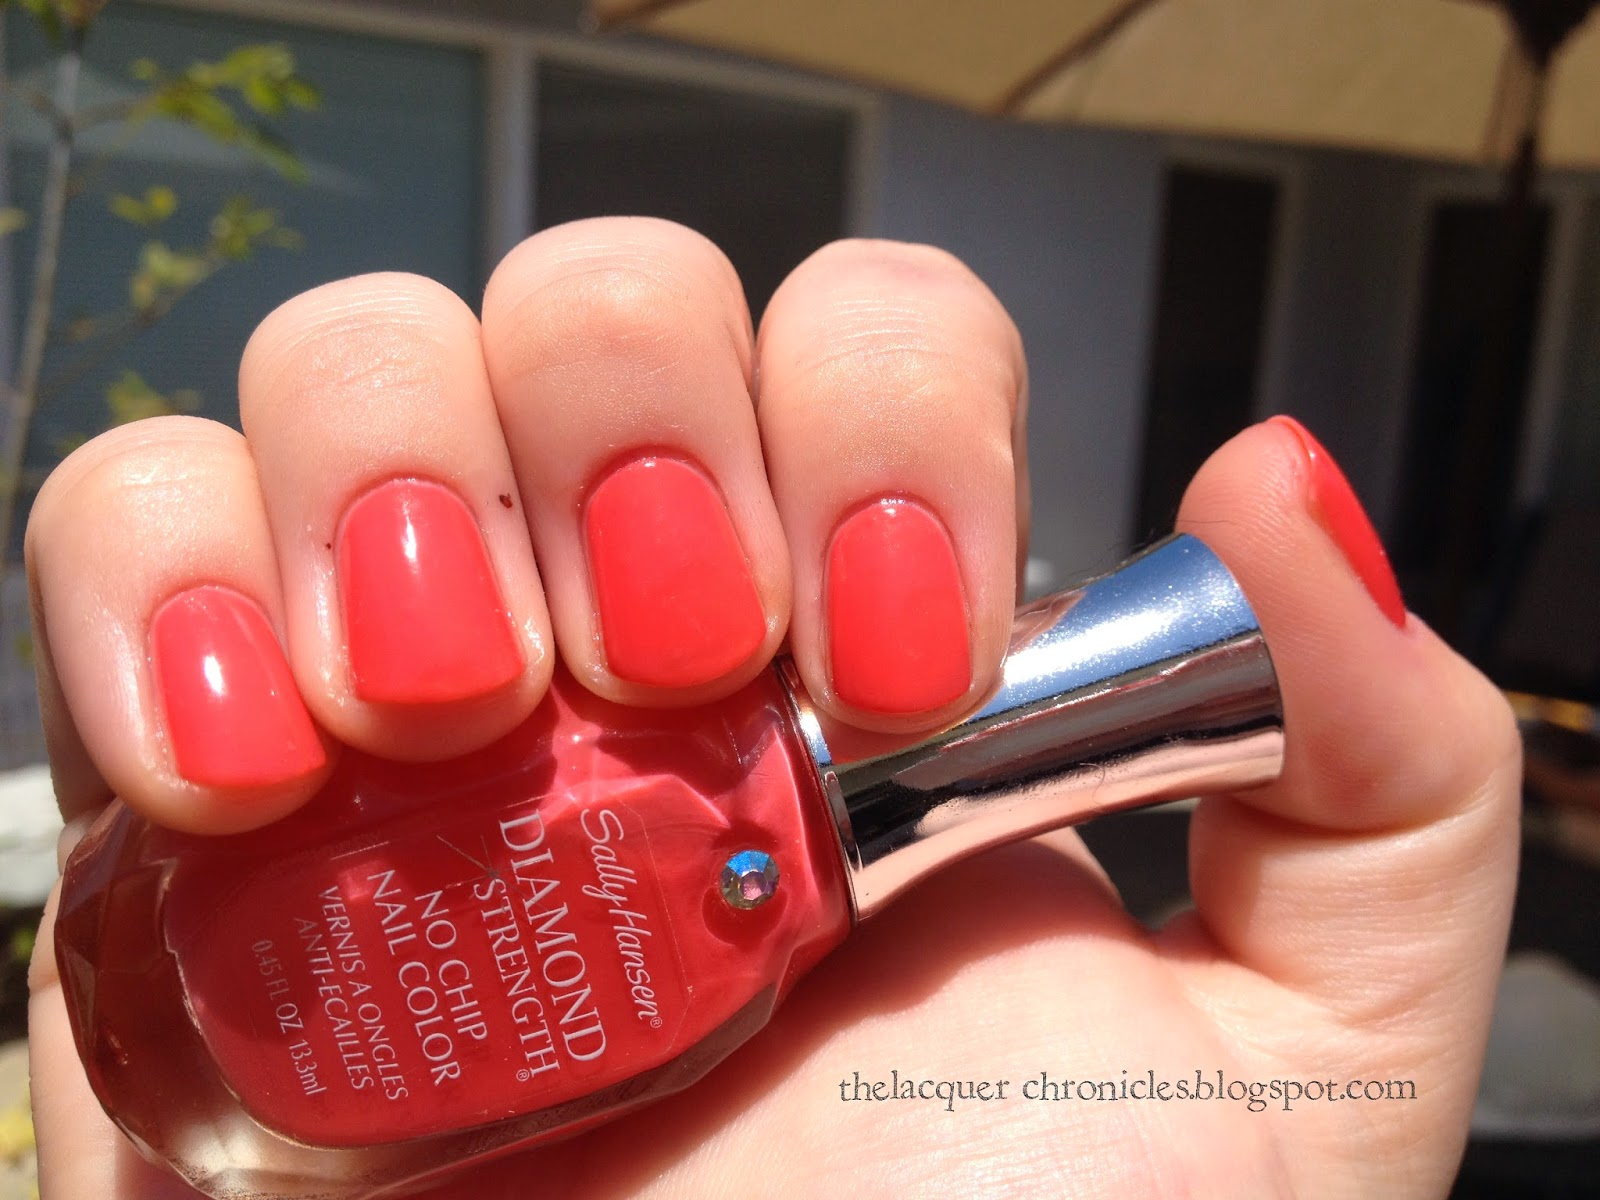 The Lacquer Chronicles: Sally Hansen Something New